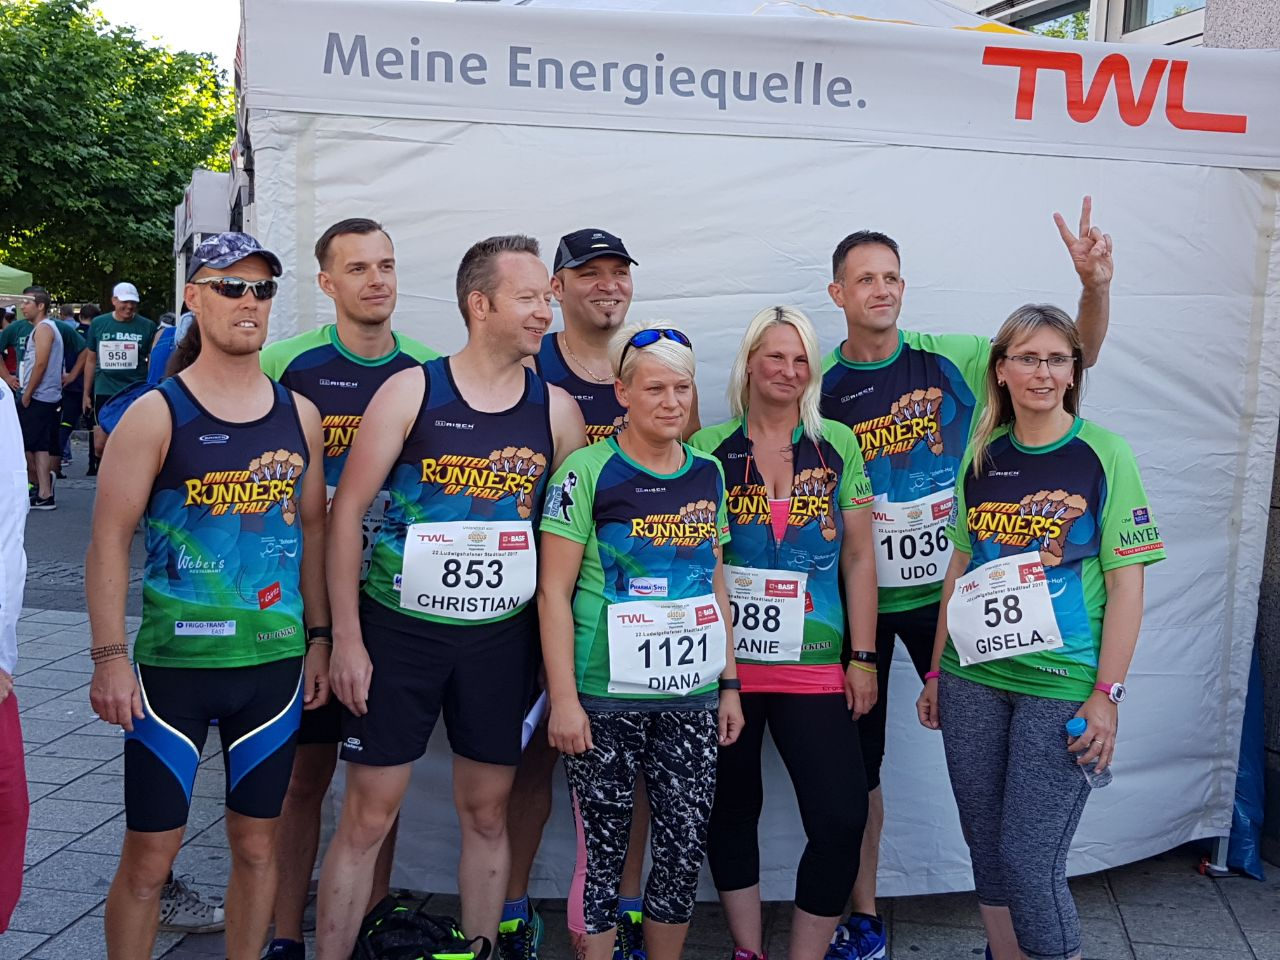 https://united-runners-of-pfalz.de/wp-content/uploads/2017/06/IMG-20170624-WA0031-2.jpg